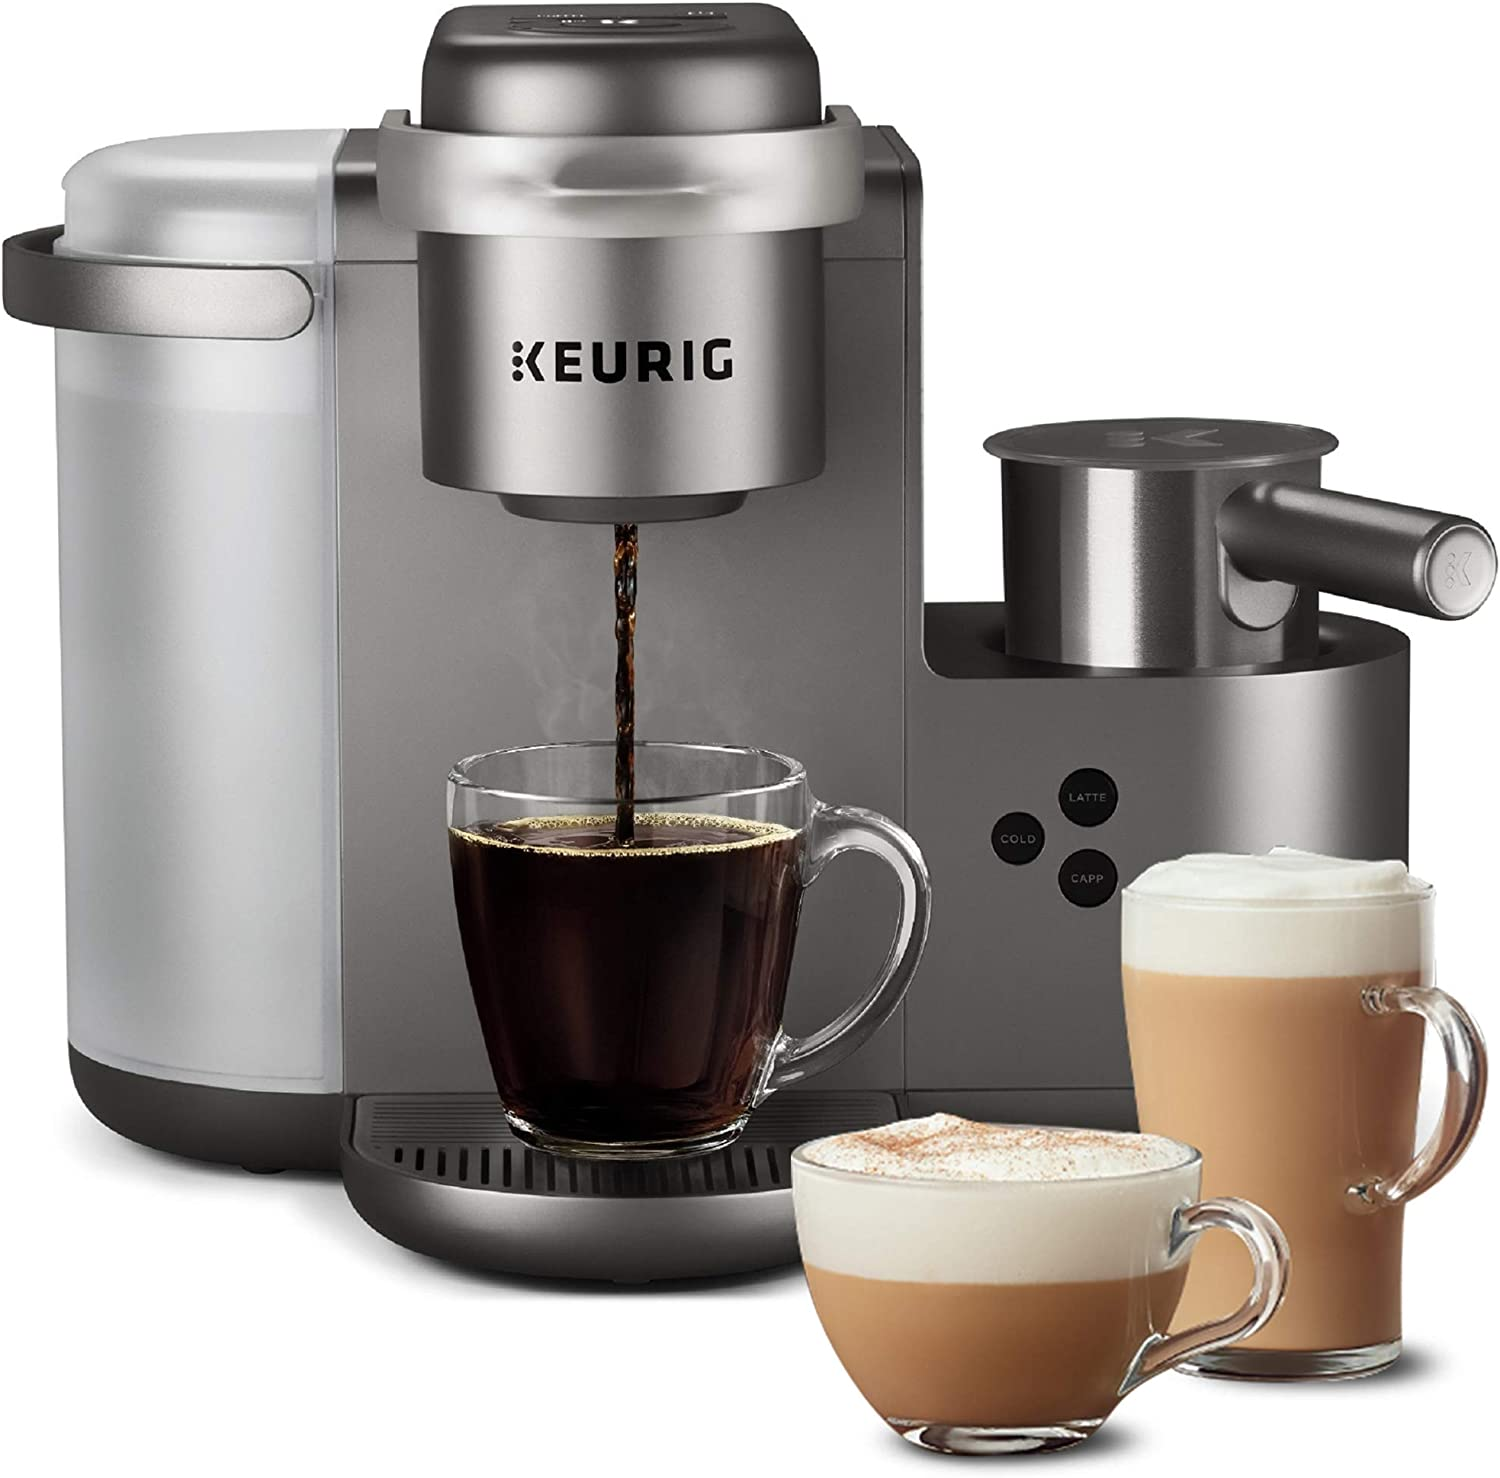 Keurig K-Cafe Special Edition Coffee Maker, Single Serve K-Cup Pod Coffee, Latte and Cappuccino Maker, Comes with Dishwasher Safe Milk Frother, Coffee Shot Capability, Nickel (Renewed)